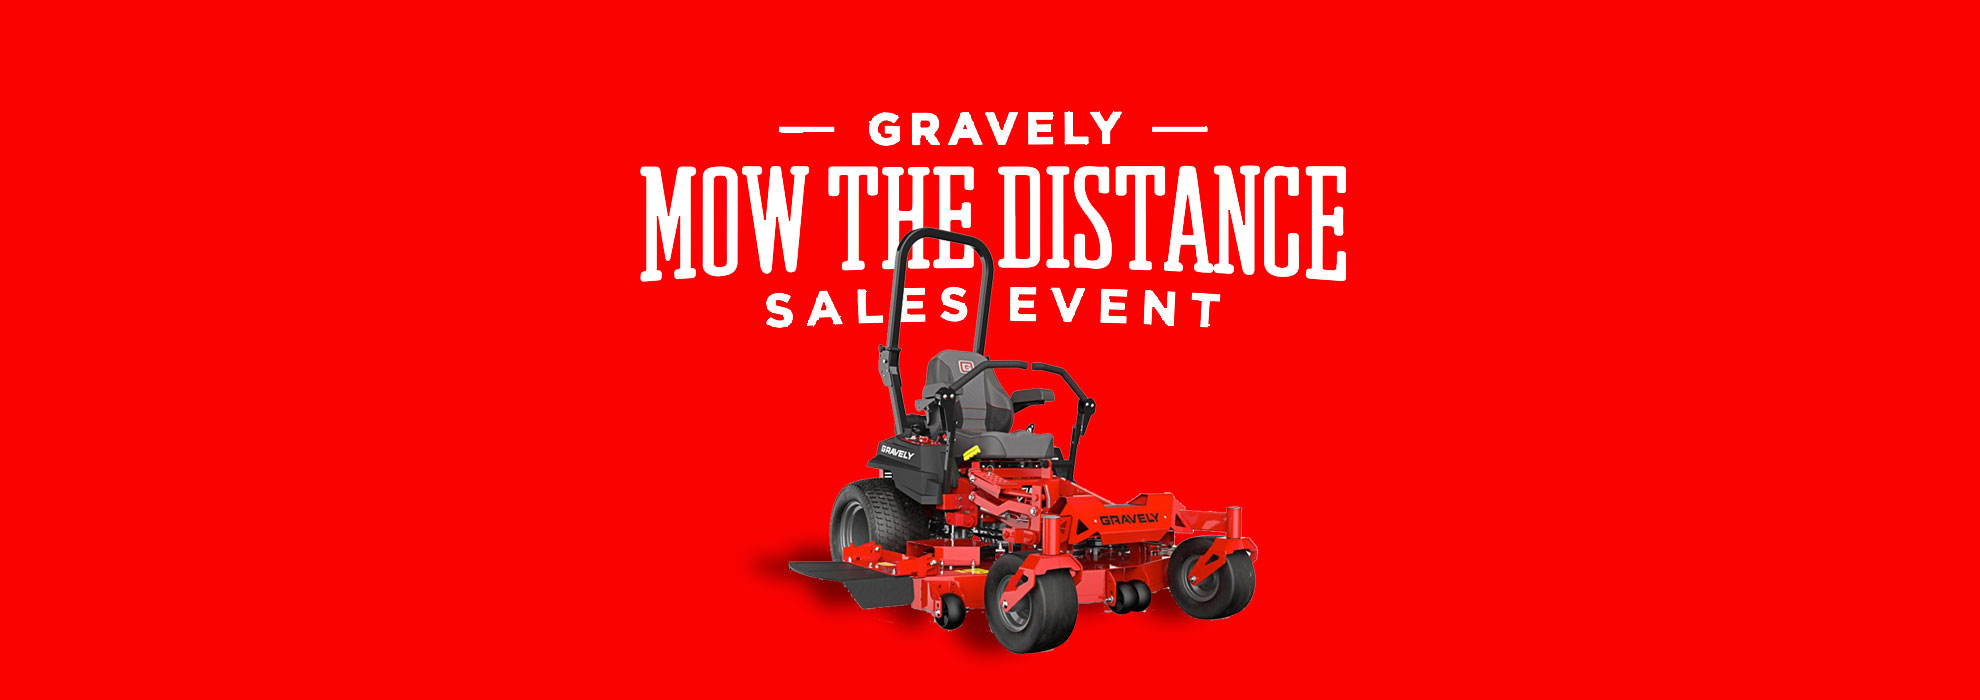 mow the distance gravely sale